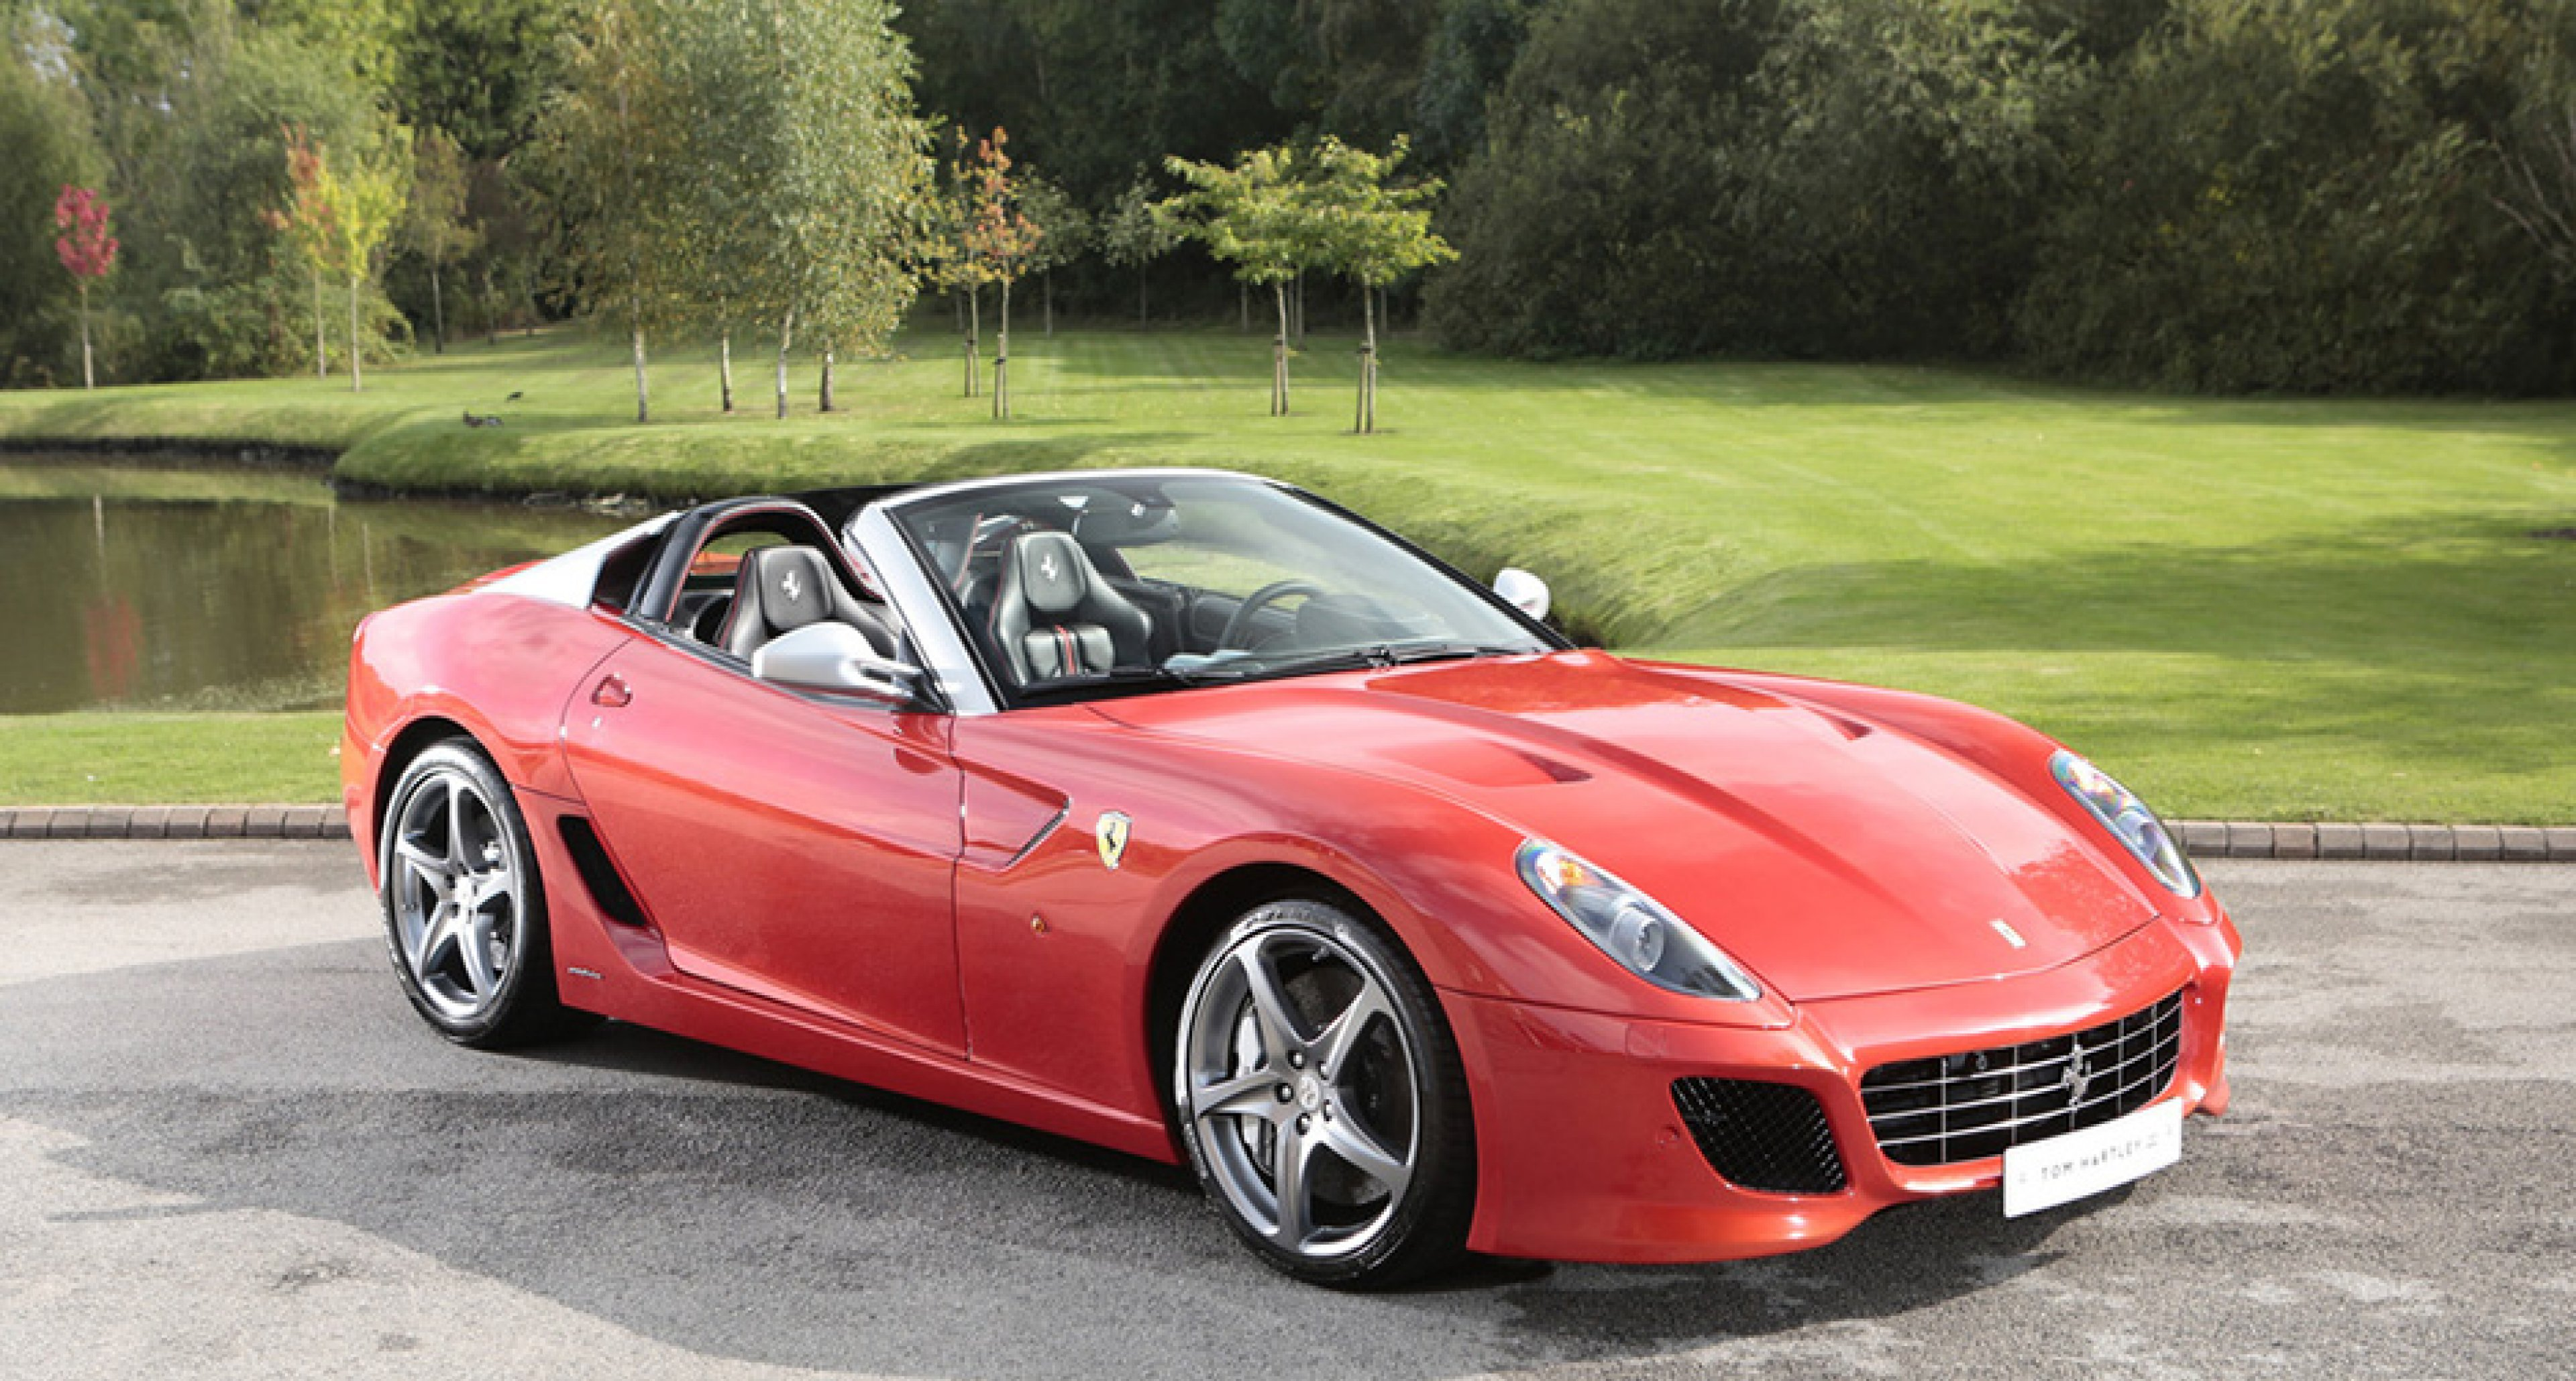 Own one of the rarest modern production Ferraris   Clic Driver ...